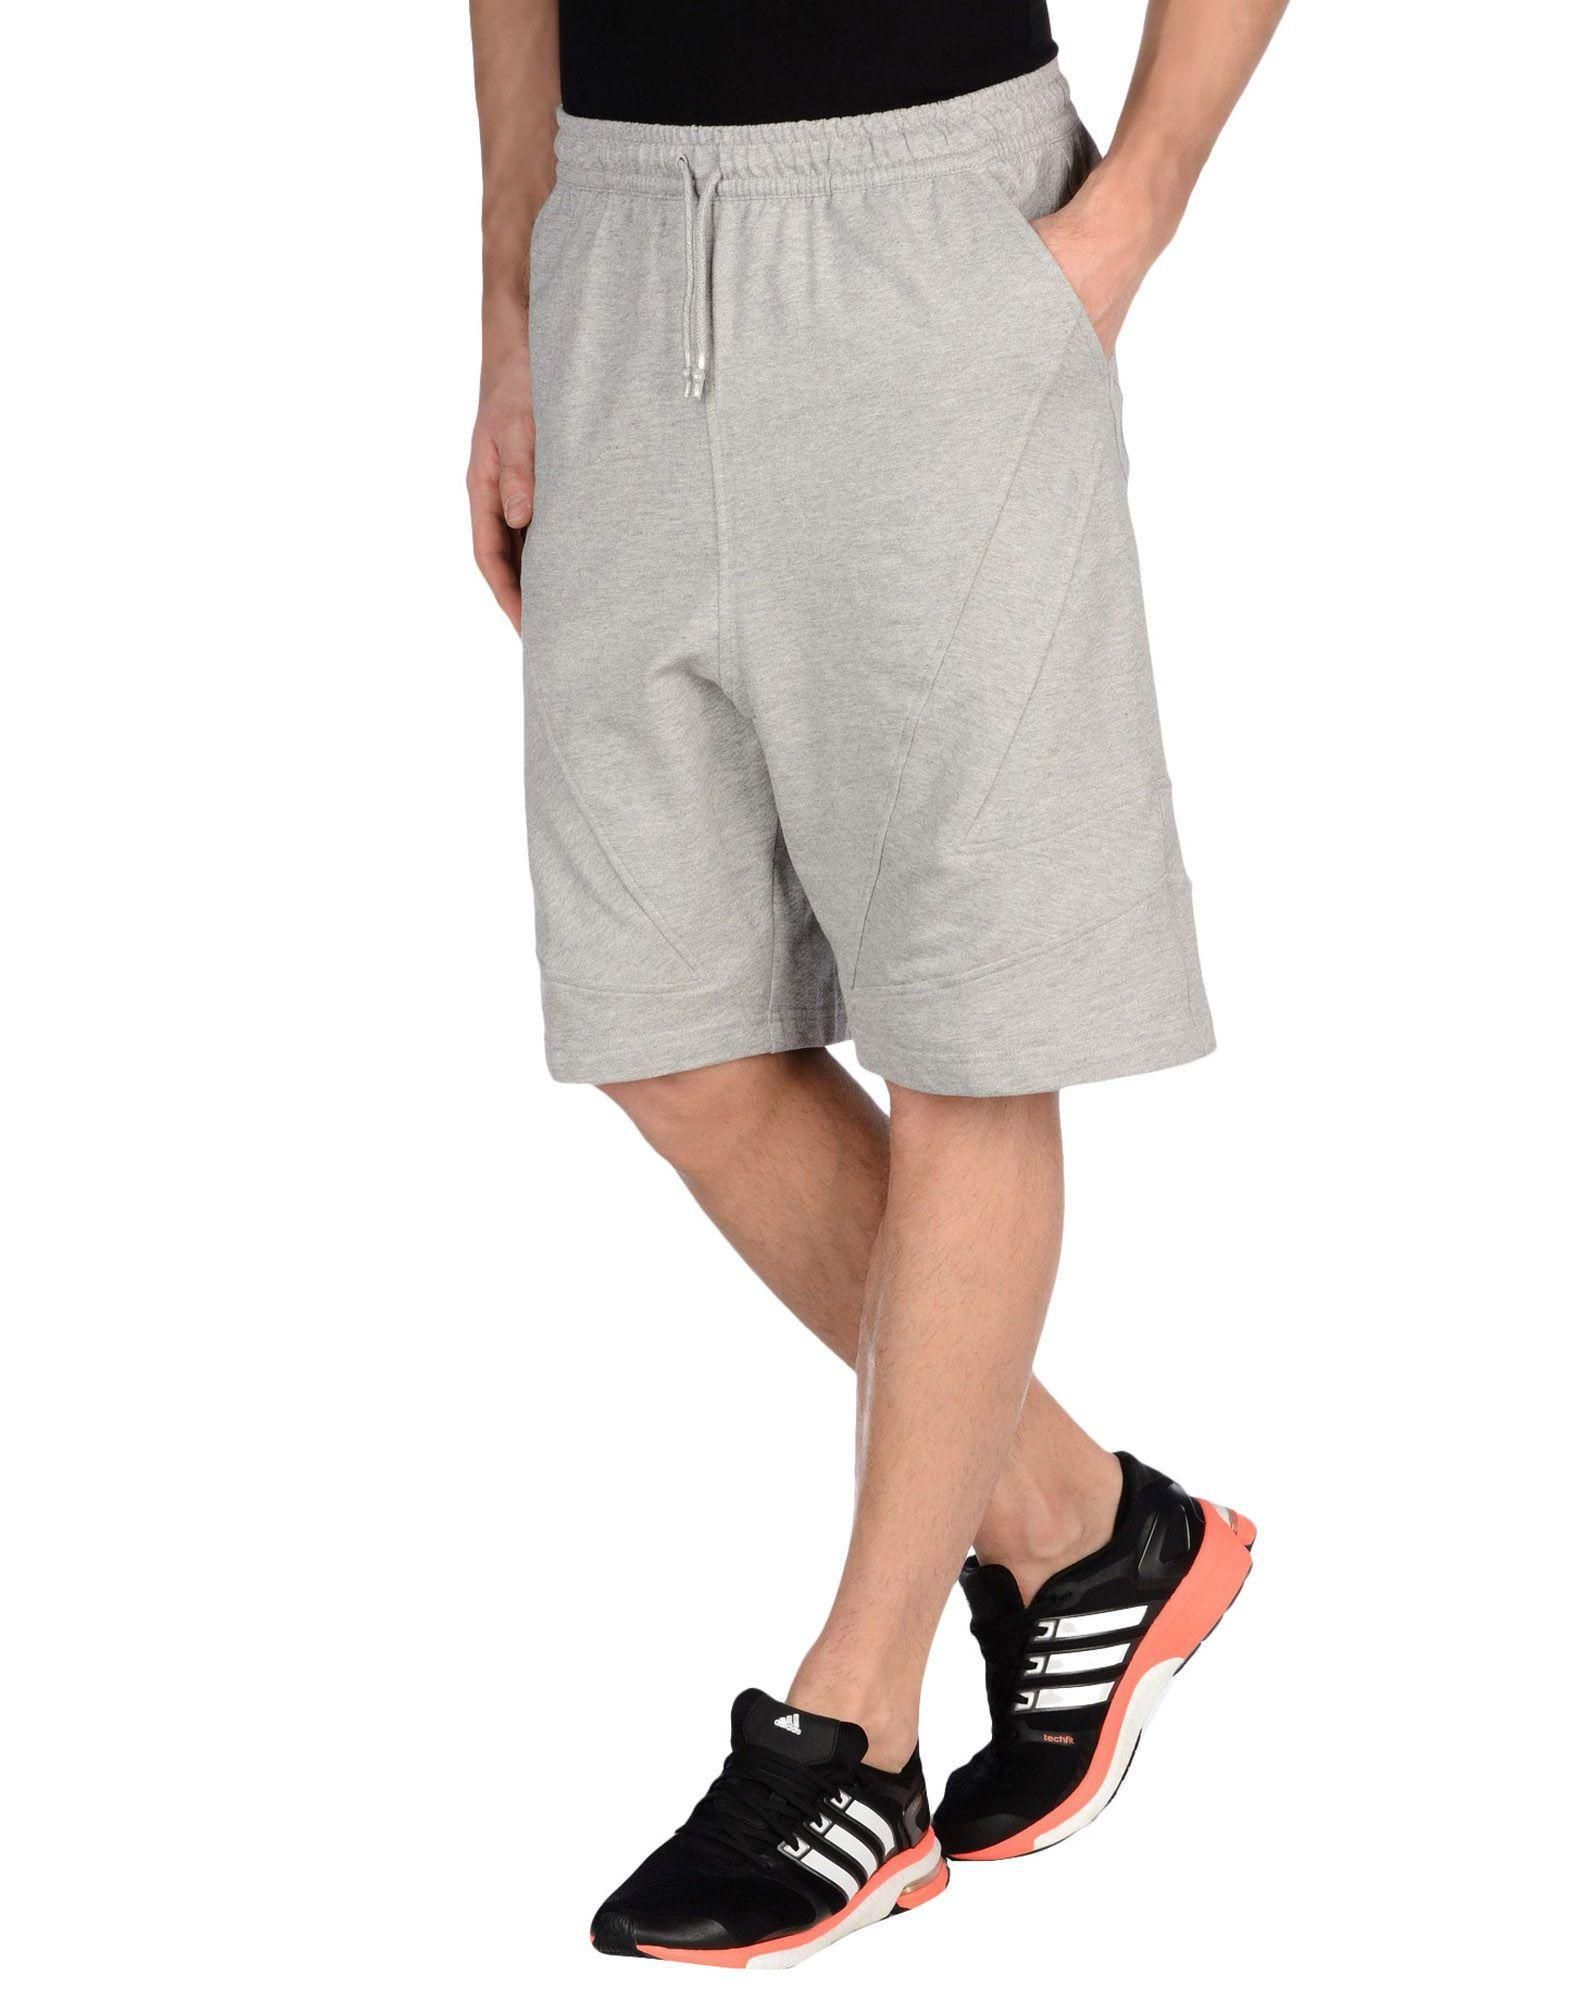 new collection innovative design outlet online Men's Gray Shorts | sweatshorts in 2019 | Adidas originals ...